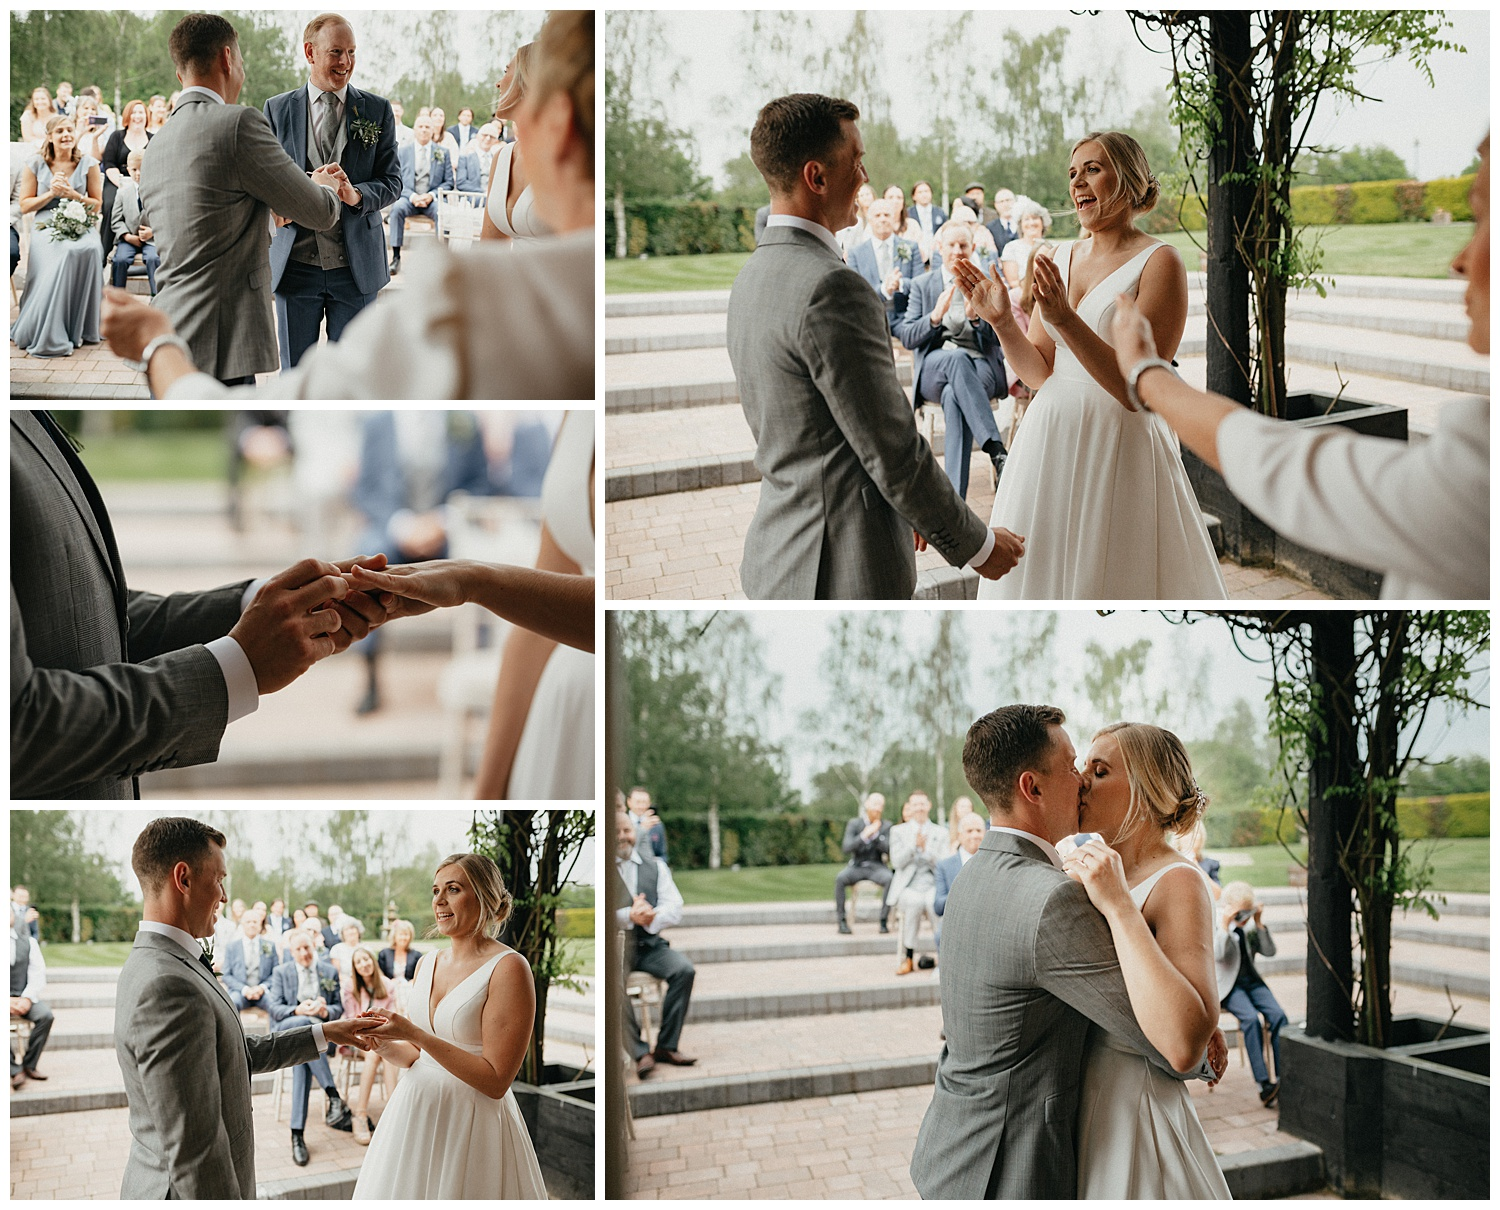 Weddings-at-Crondon-Park-the-bride-and-groom-share-rings